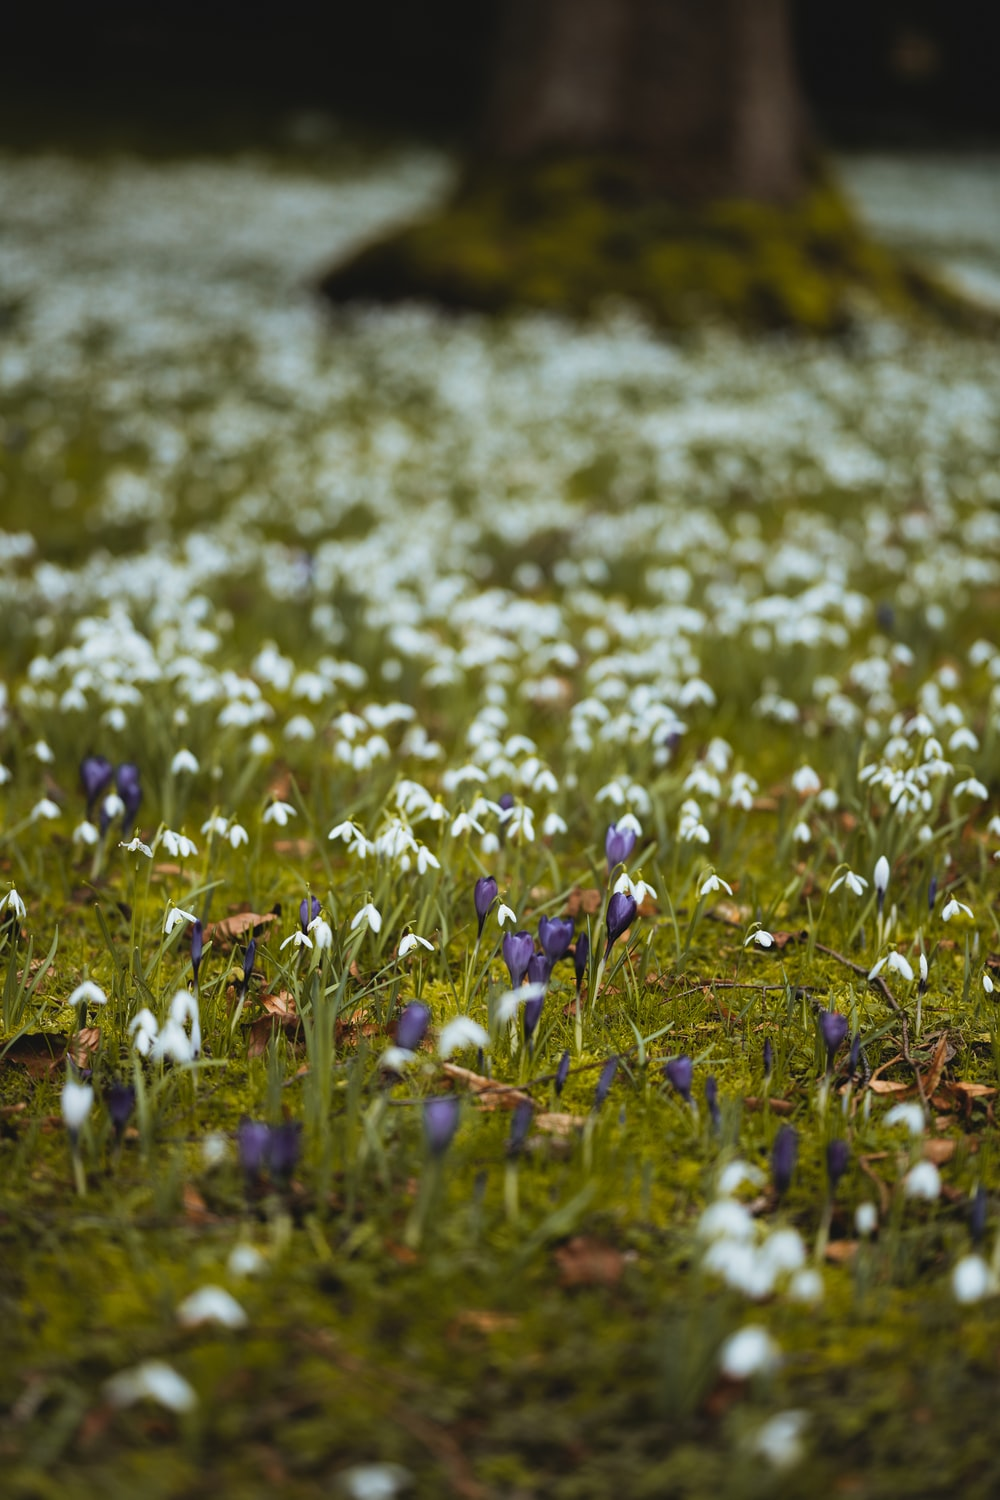 blue and white flowers on green grass field during daytime